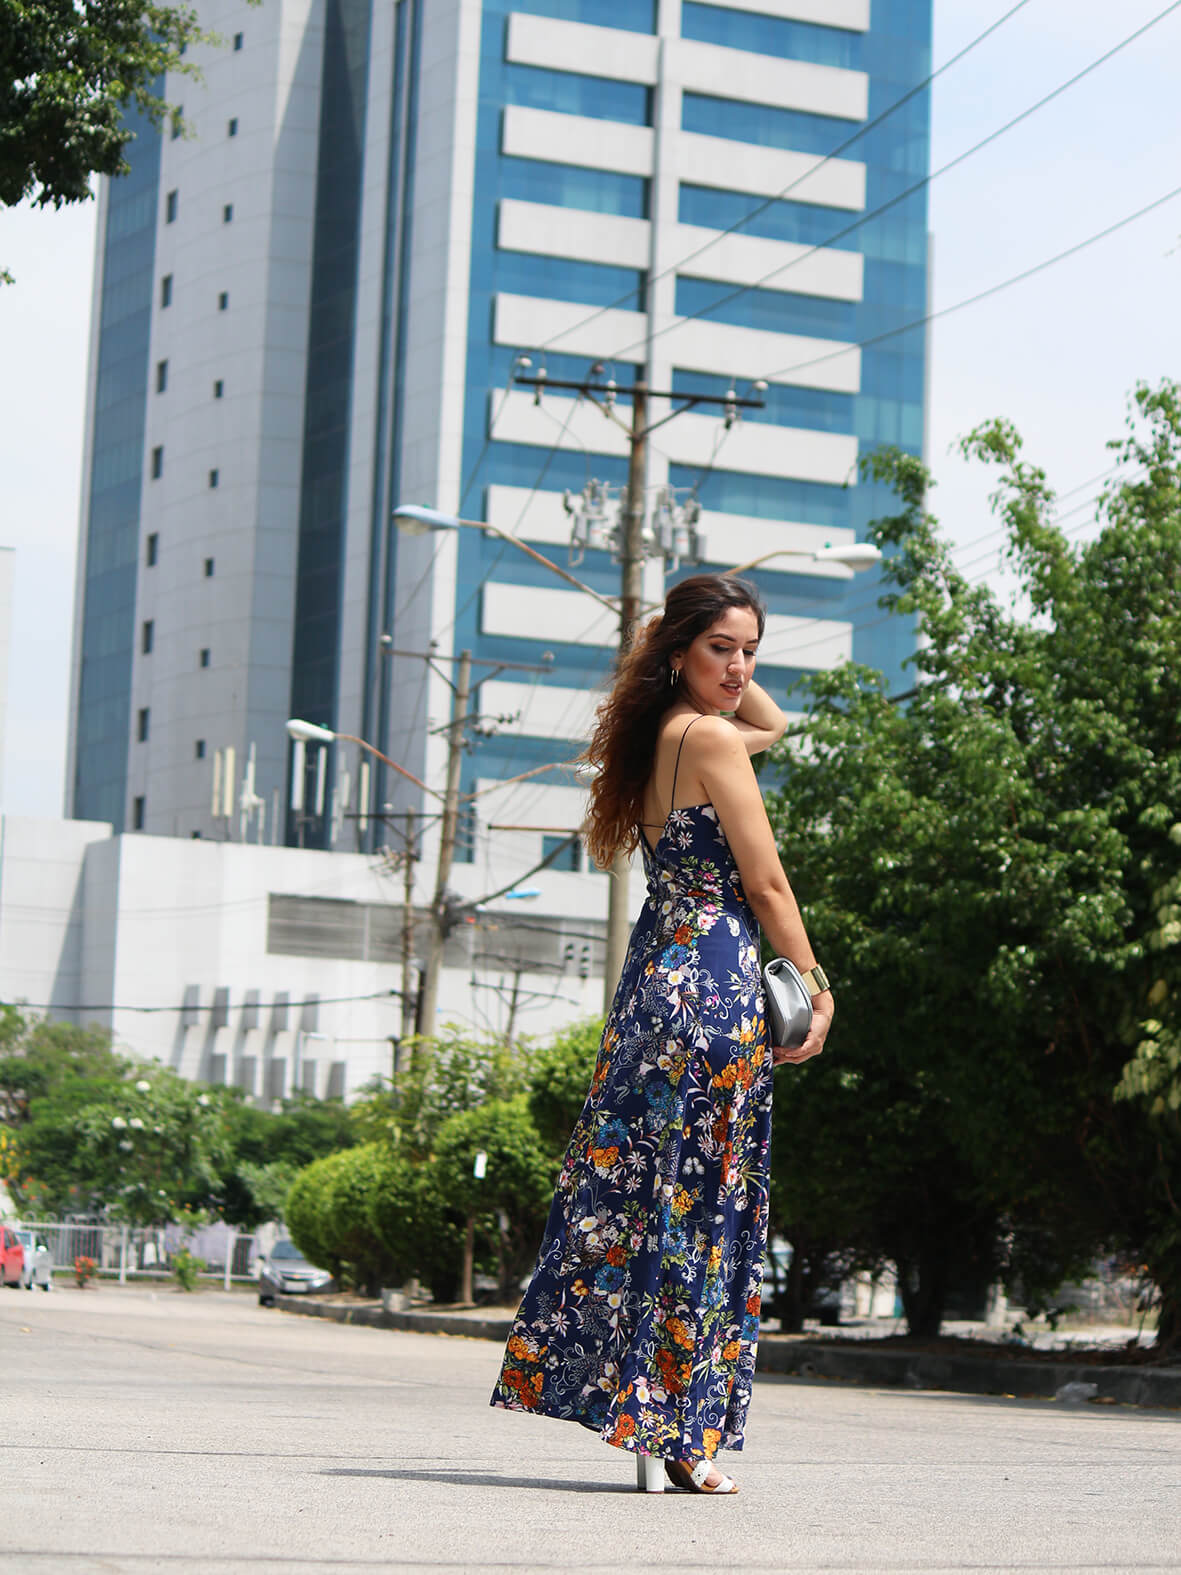 Flower dress - Look De Prati